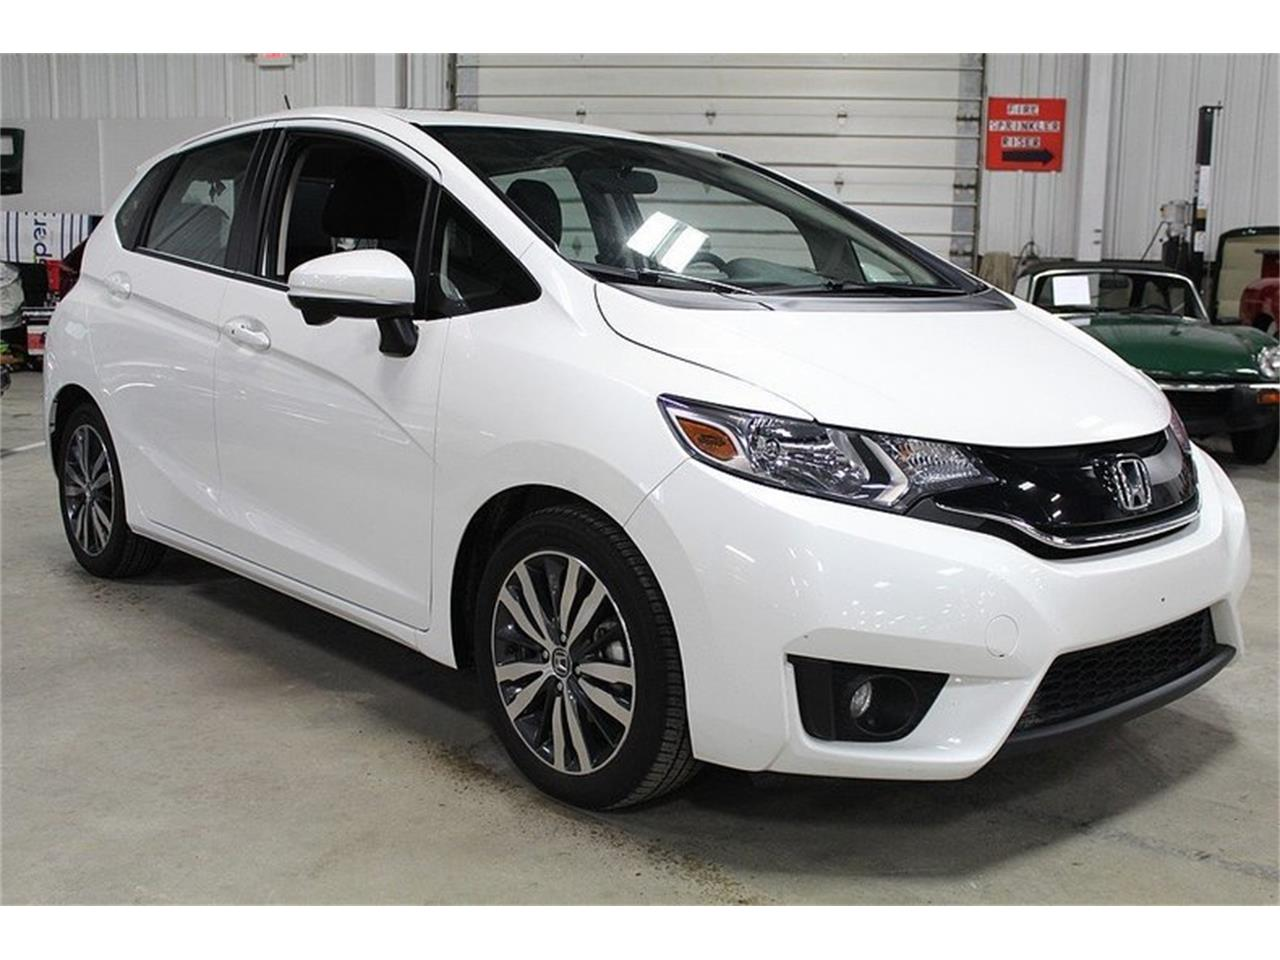 Large Picture of '15 Honda Fit located in Michigan Offered by GR Auto Gallery - MO4N